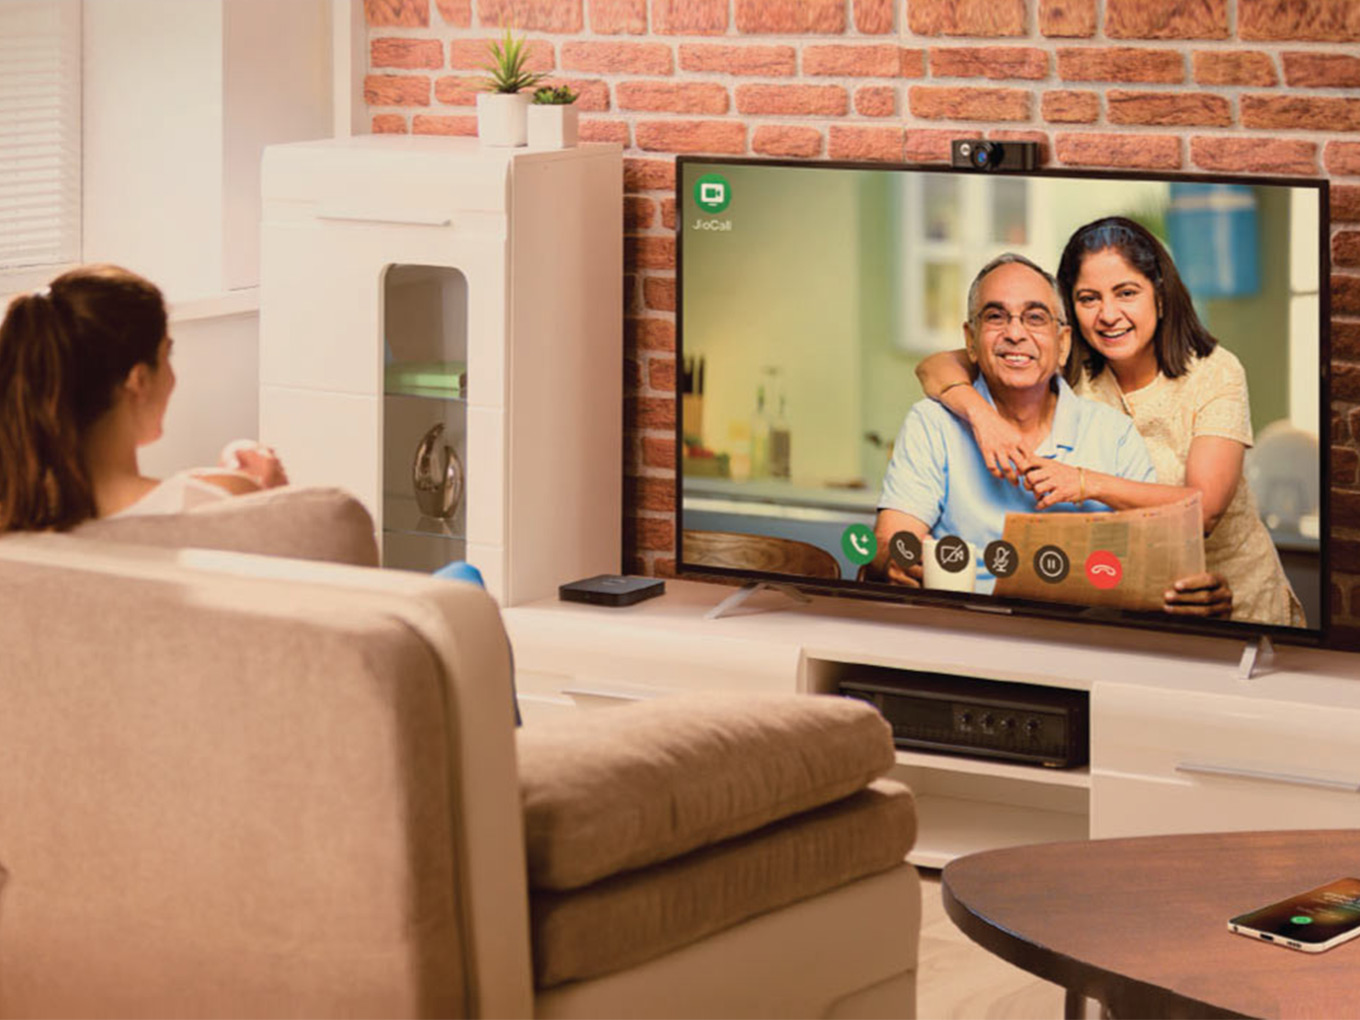 WIll Reliance Disrupt Broadband Market With Its Spectrum Of JioFiber Services?